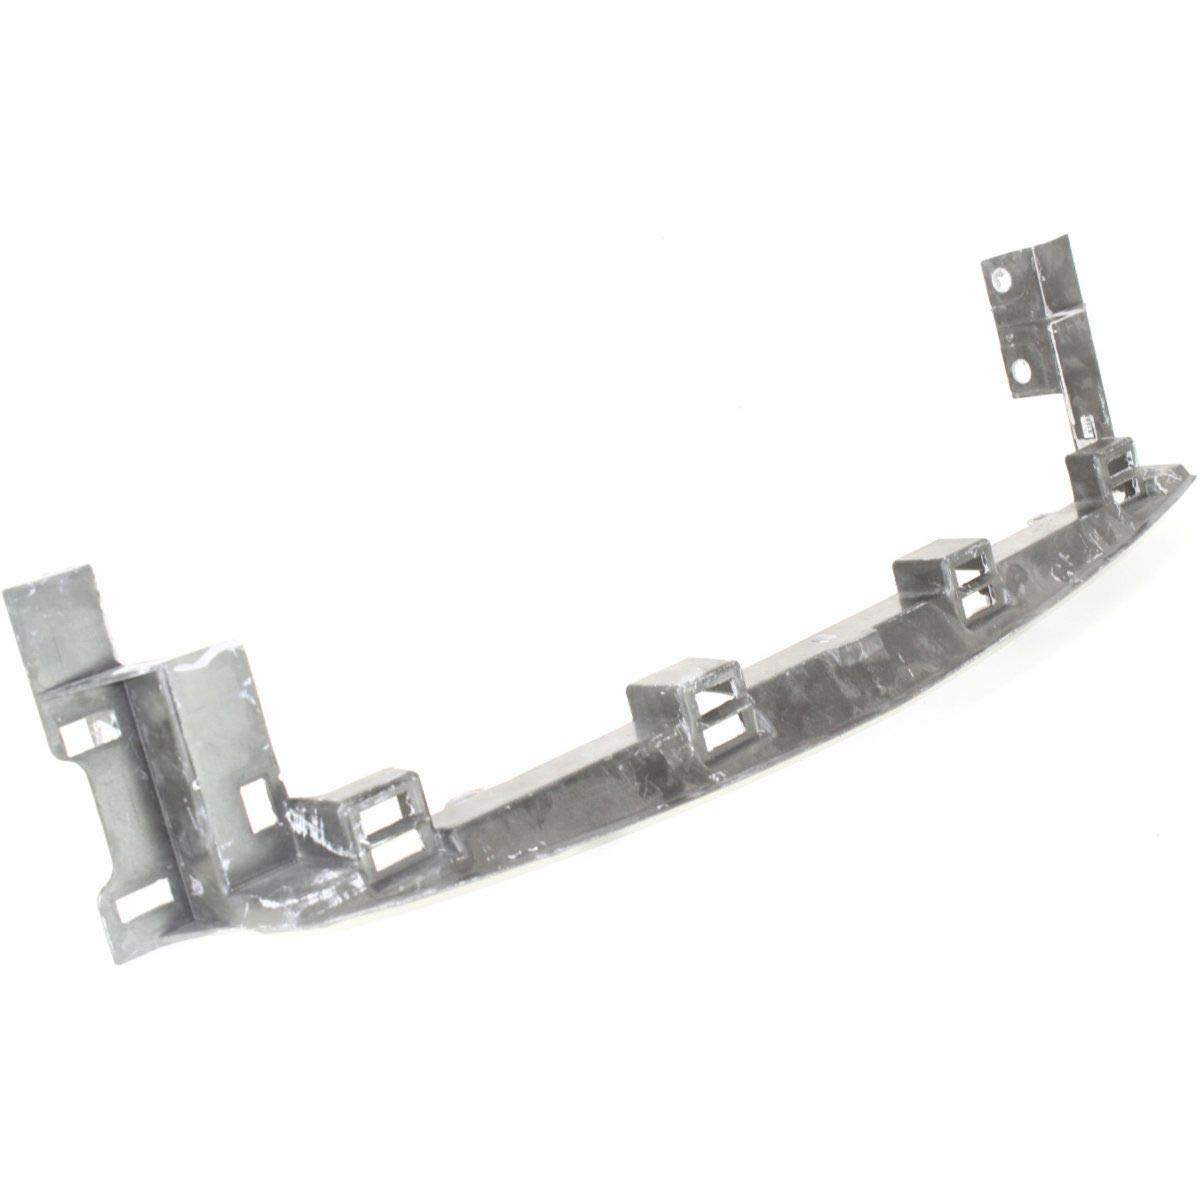 New GM1041117 Front Bumper Cover Support for Buick Century 1997-2005